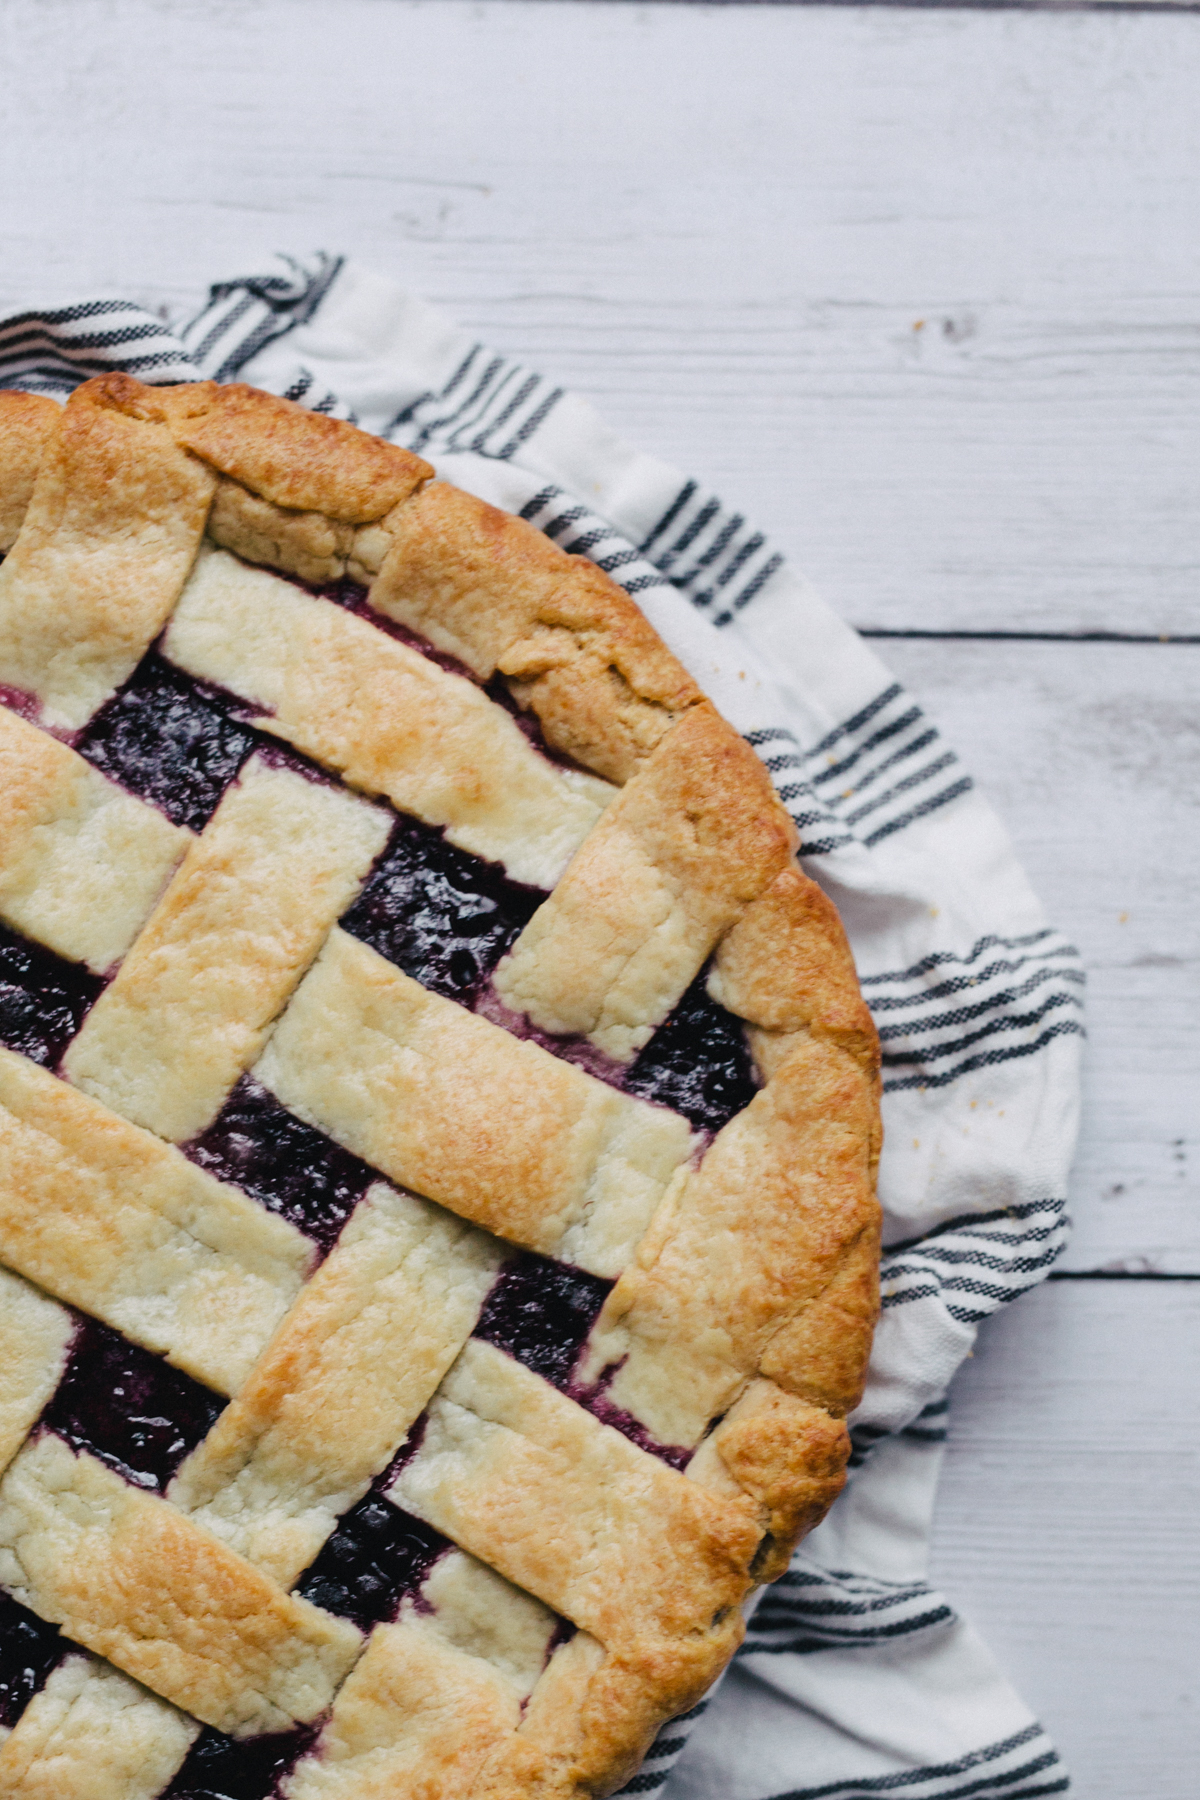 FoodPhotography-PiDay-15